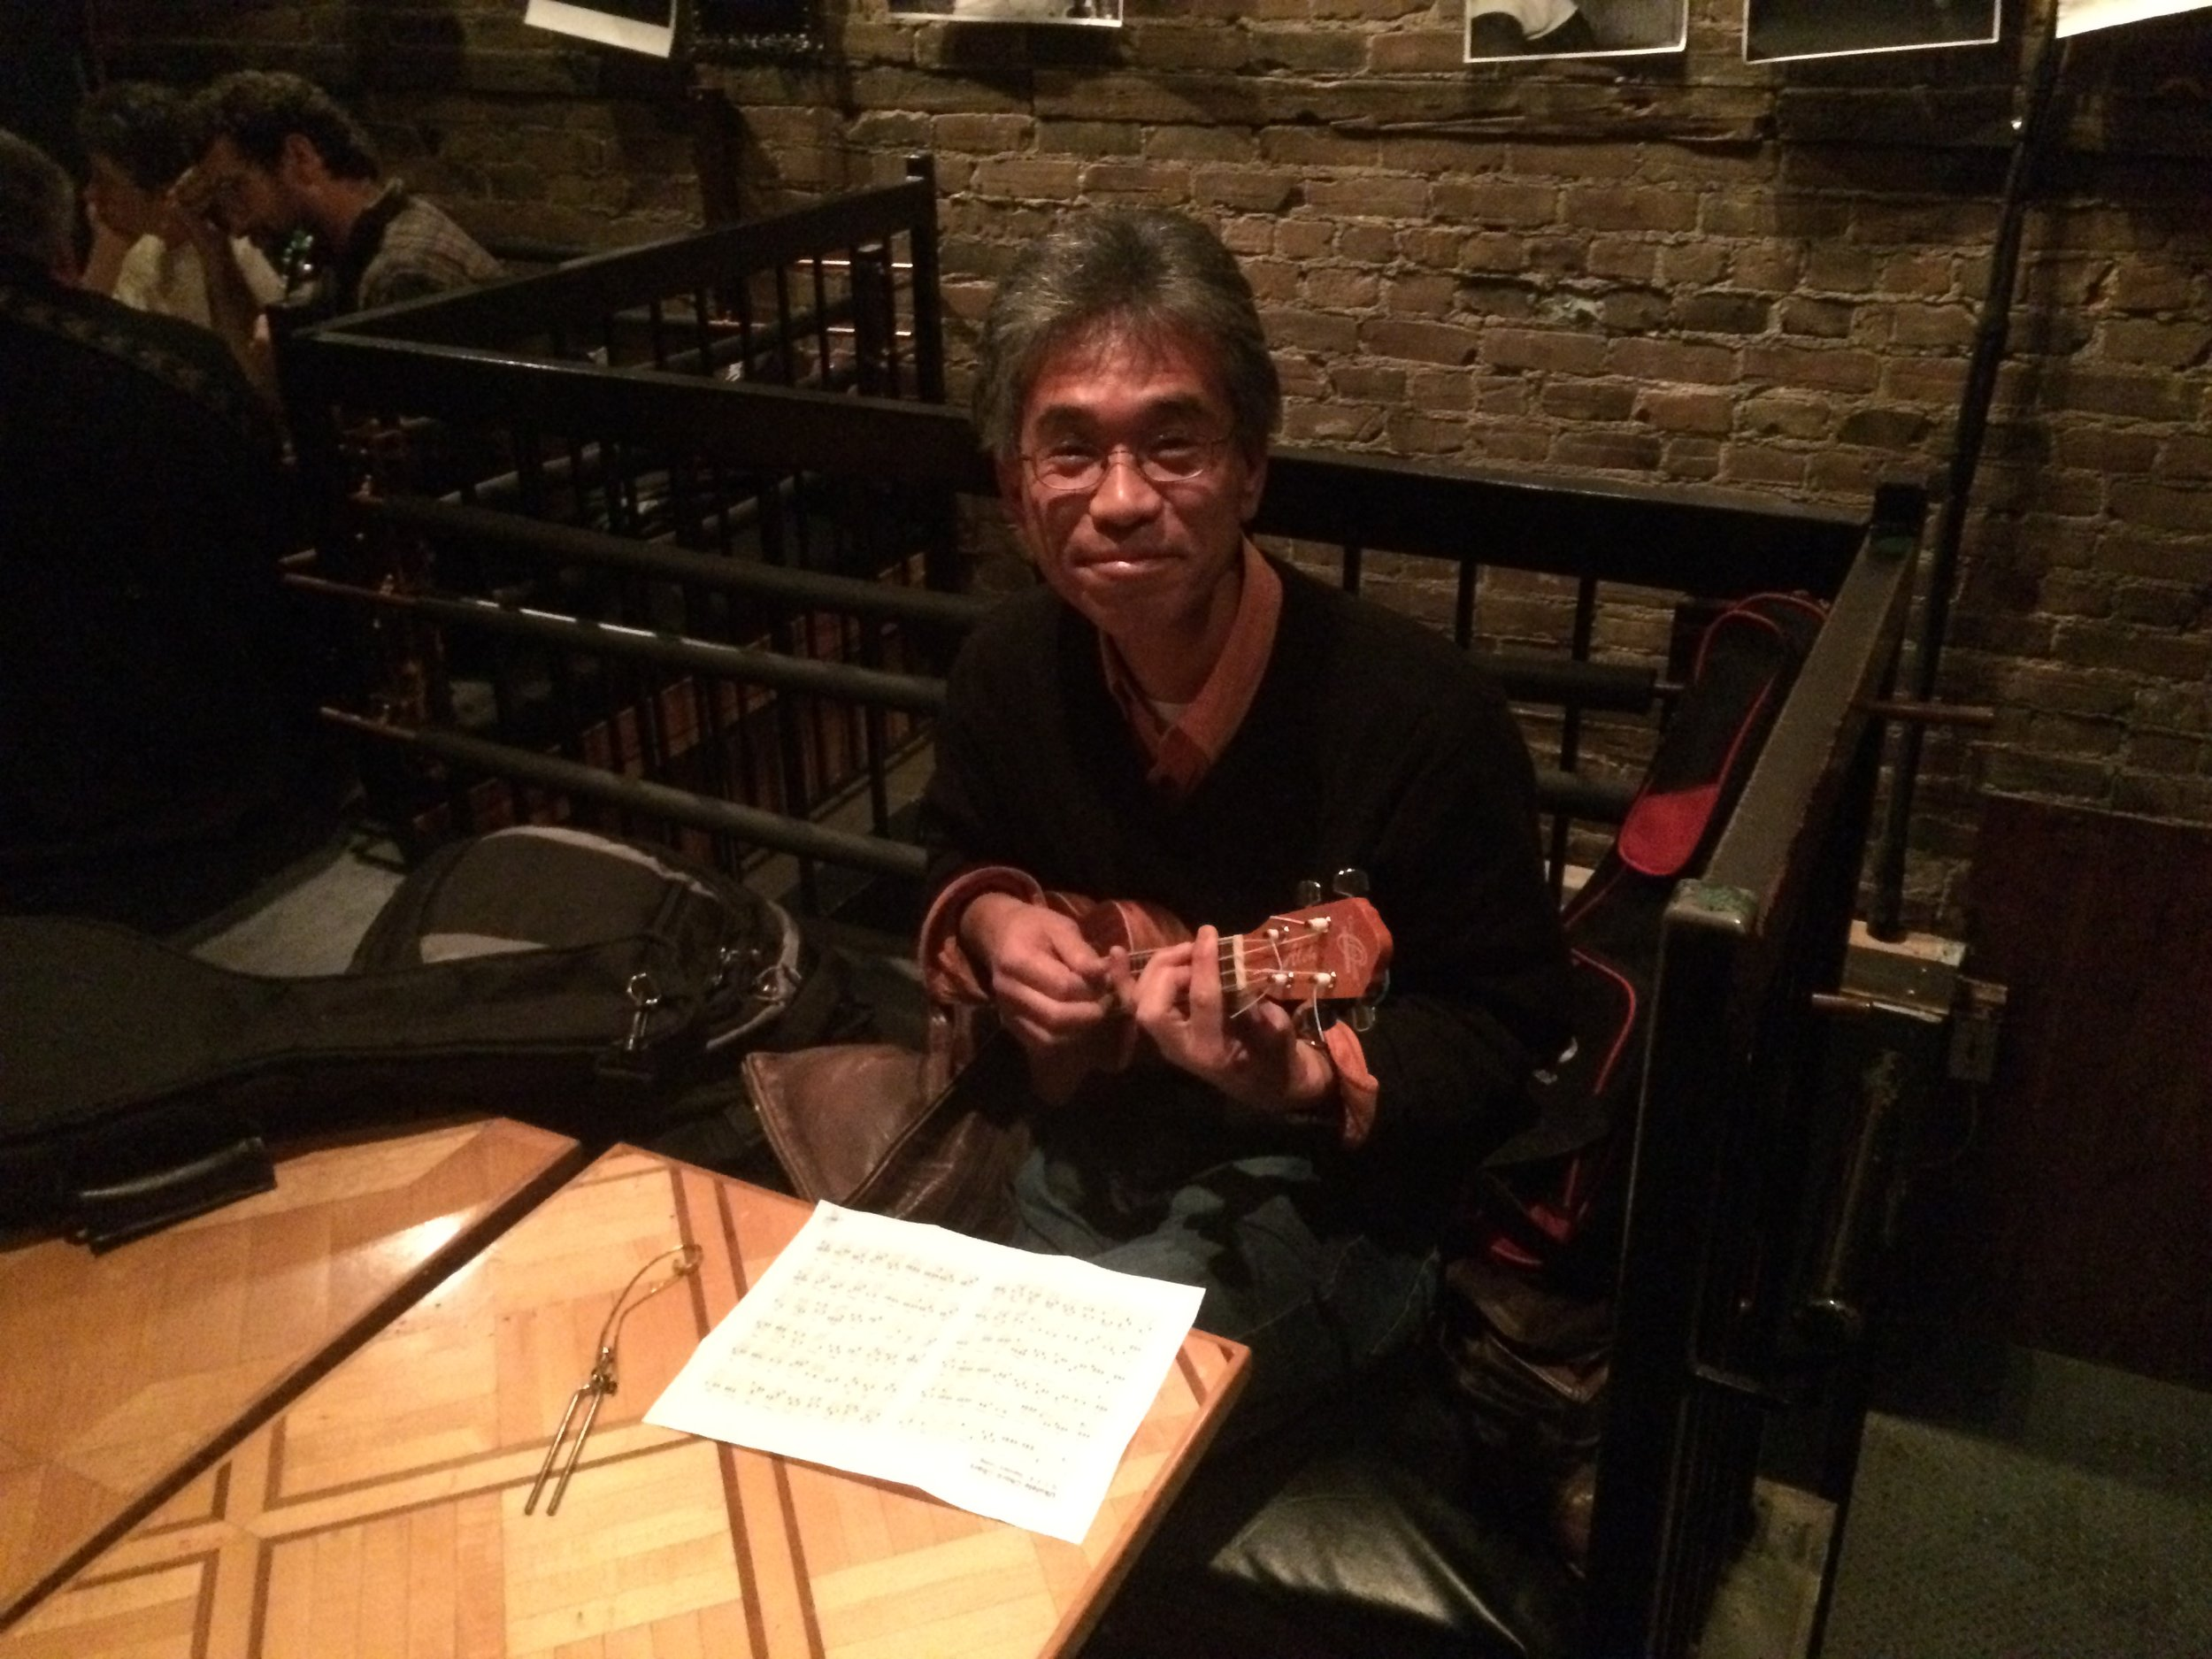 Chris was a speaker at the 2015 Reseau Quebecois en Reproduction (RQR) Symposium in Montreal, Quebec. Shown is Makoto Nagano (McGill University) playing a very small guitar (also called a ukulele). Not shown is Bruce Murphy (University of Montreal), who evidently didn't want to be seen playing a ukulele!? A wonderful trip with a fantastic host (thanks Bruce!).